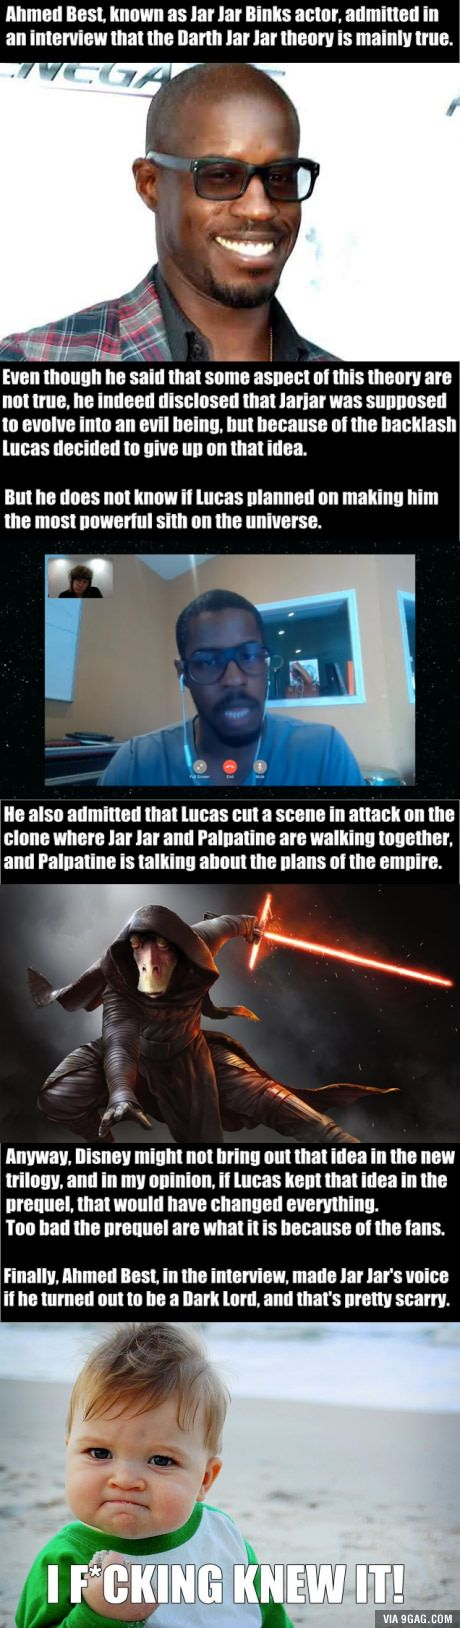 Ahmed Best (Jar Jar Binks) admitted that the Darth Jar Jar theory is mainly true!